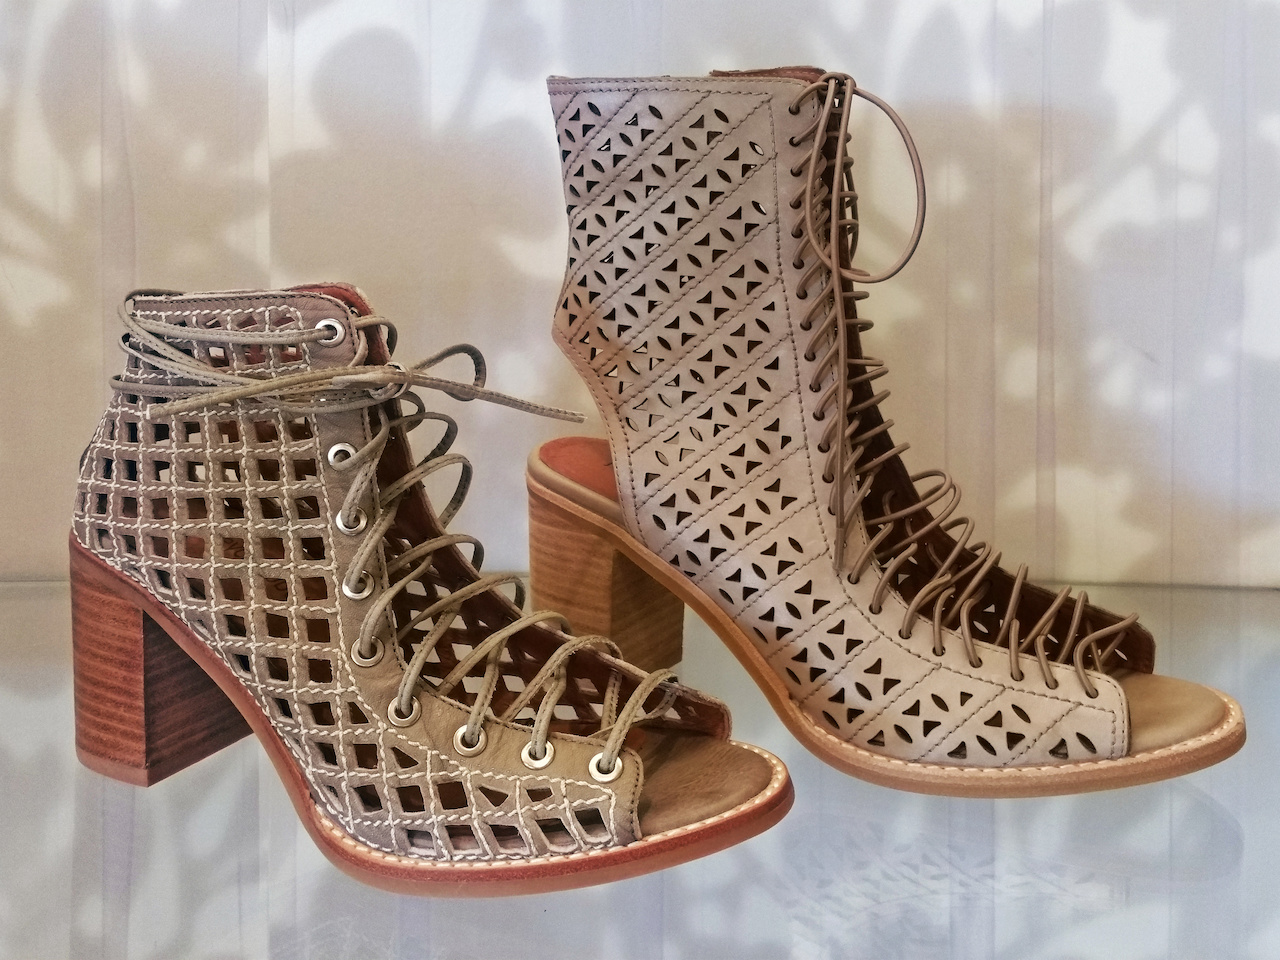 Jeffrey Campbell laser-cut booties, $195 (left) and $215 (right), at Gus Mayer